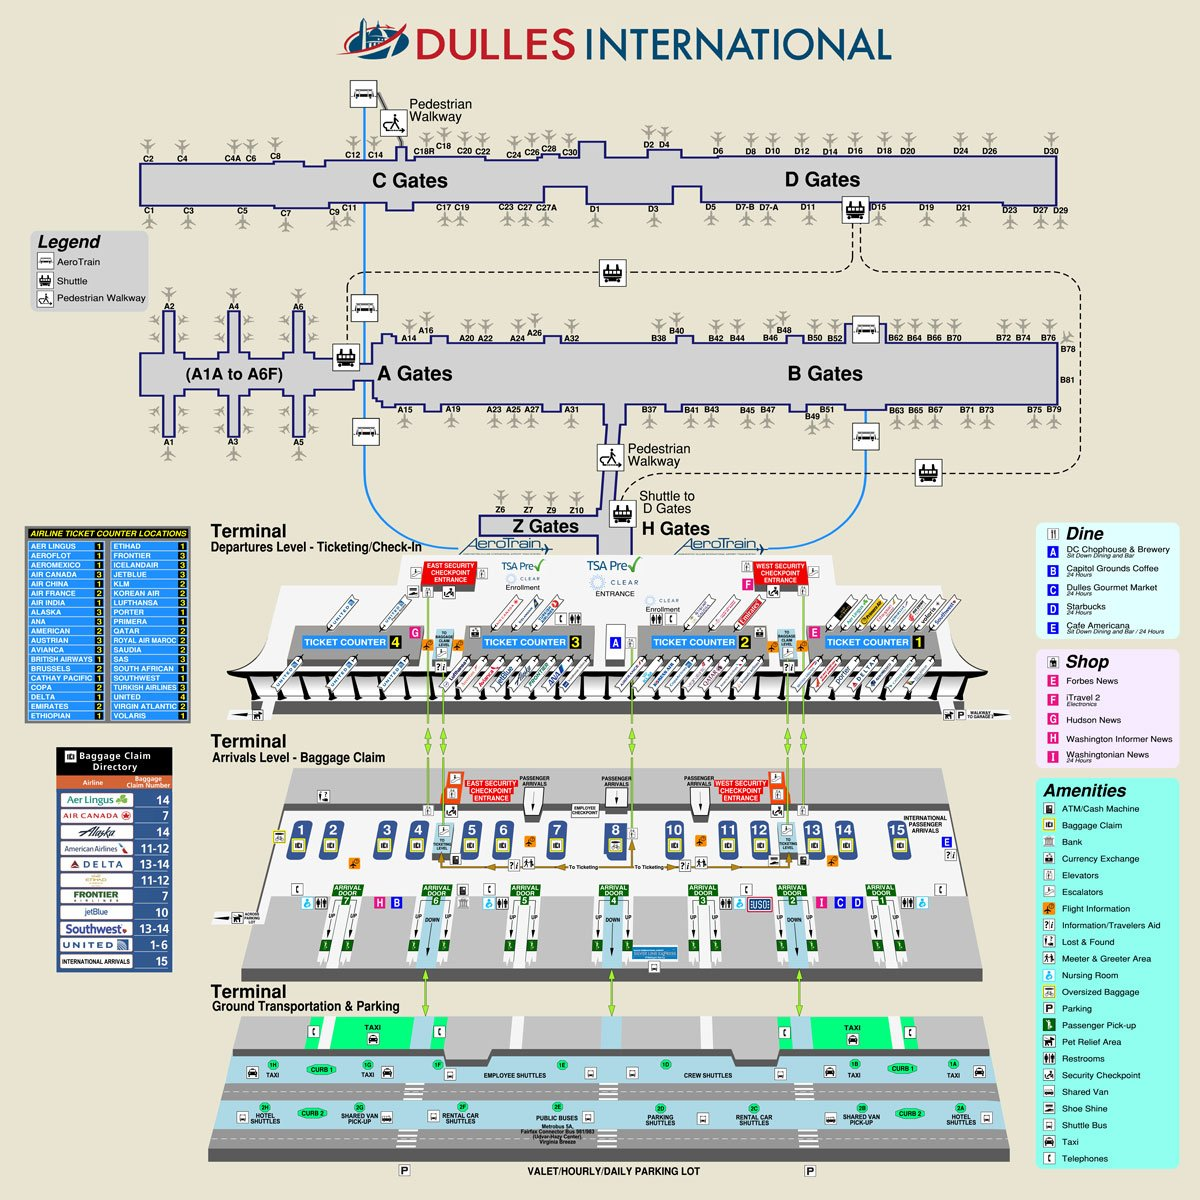 Washington Dulles International Airport Code Map And Information Skygod